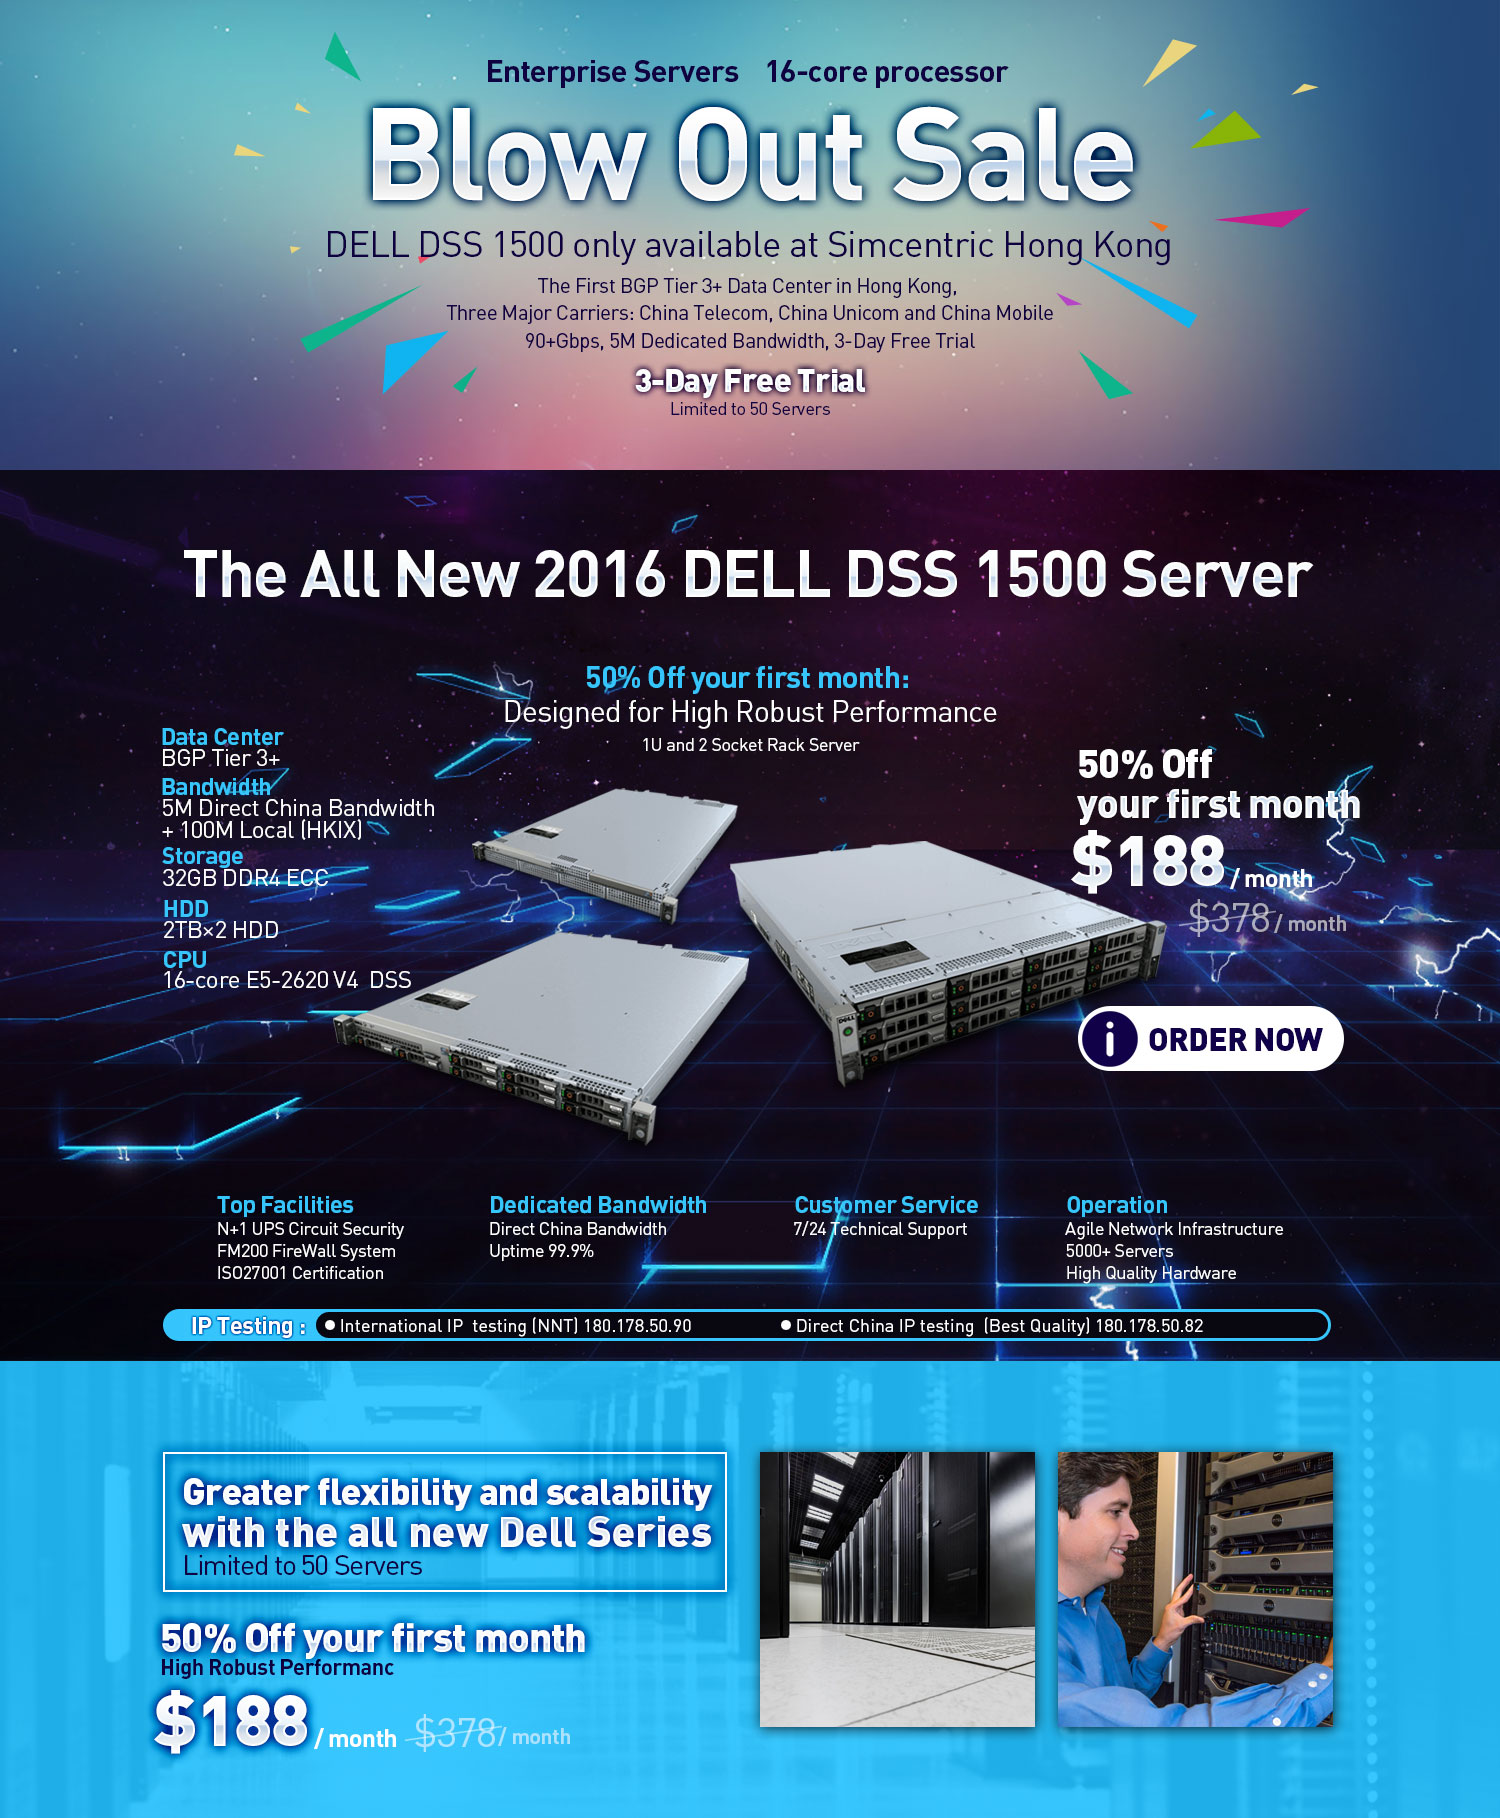 enterprise servers, 16-core processor, Dell DSS1500, 3-day free trial, limited to 50 servers, 50% off your first month, dedicated bandwidth, 90+Gbps